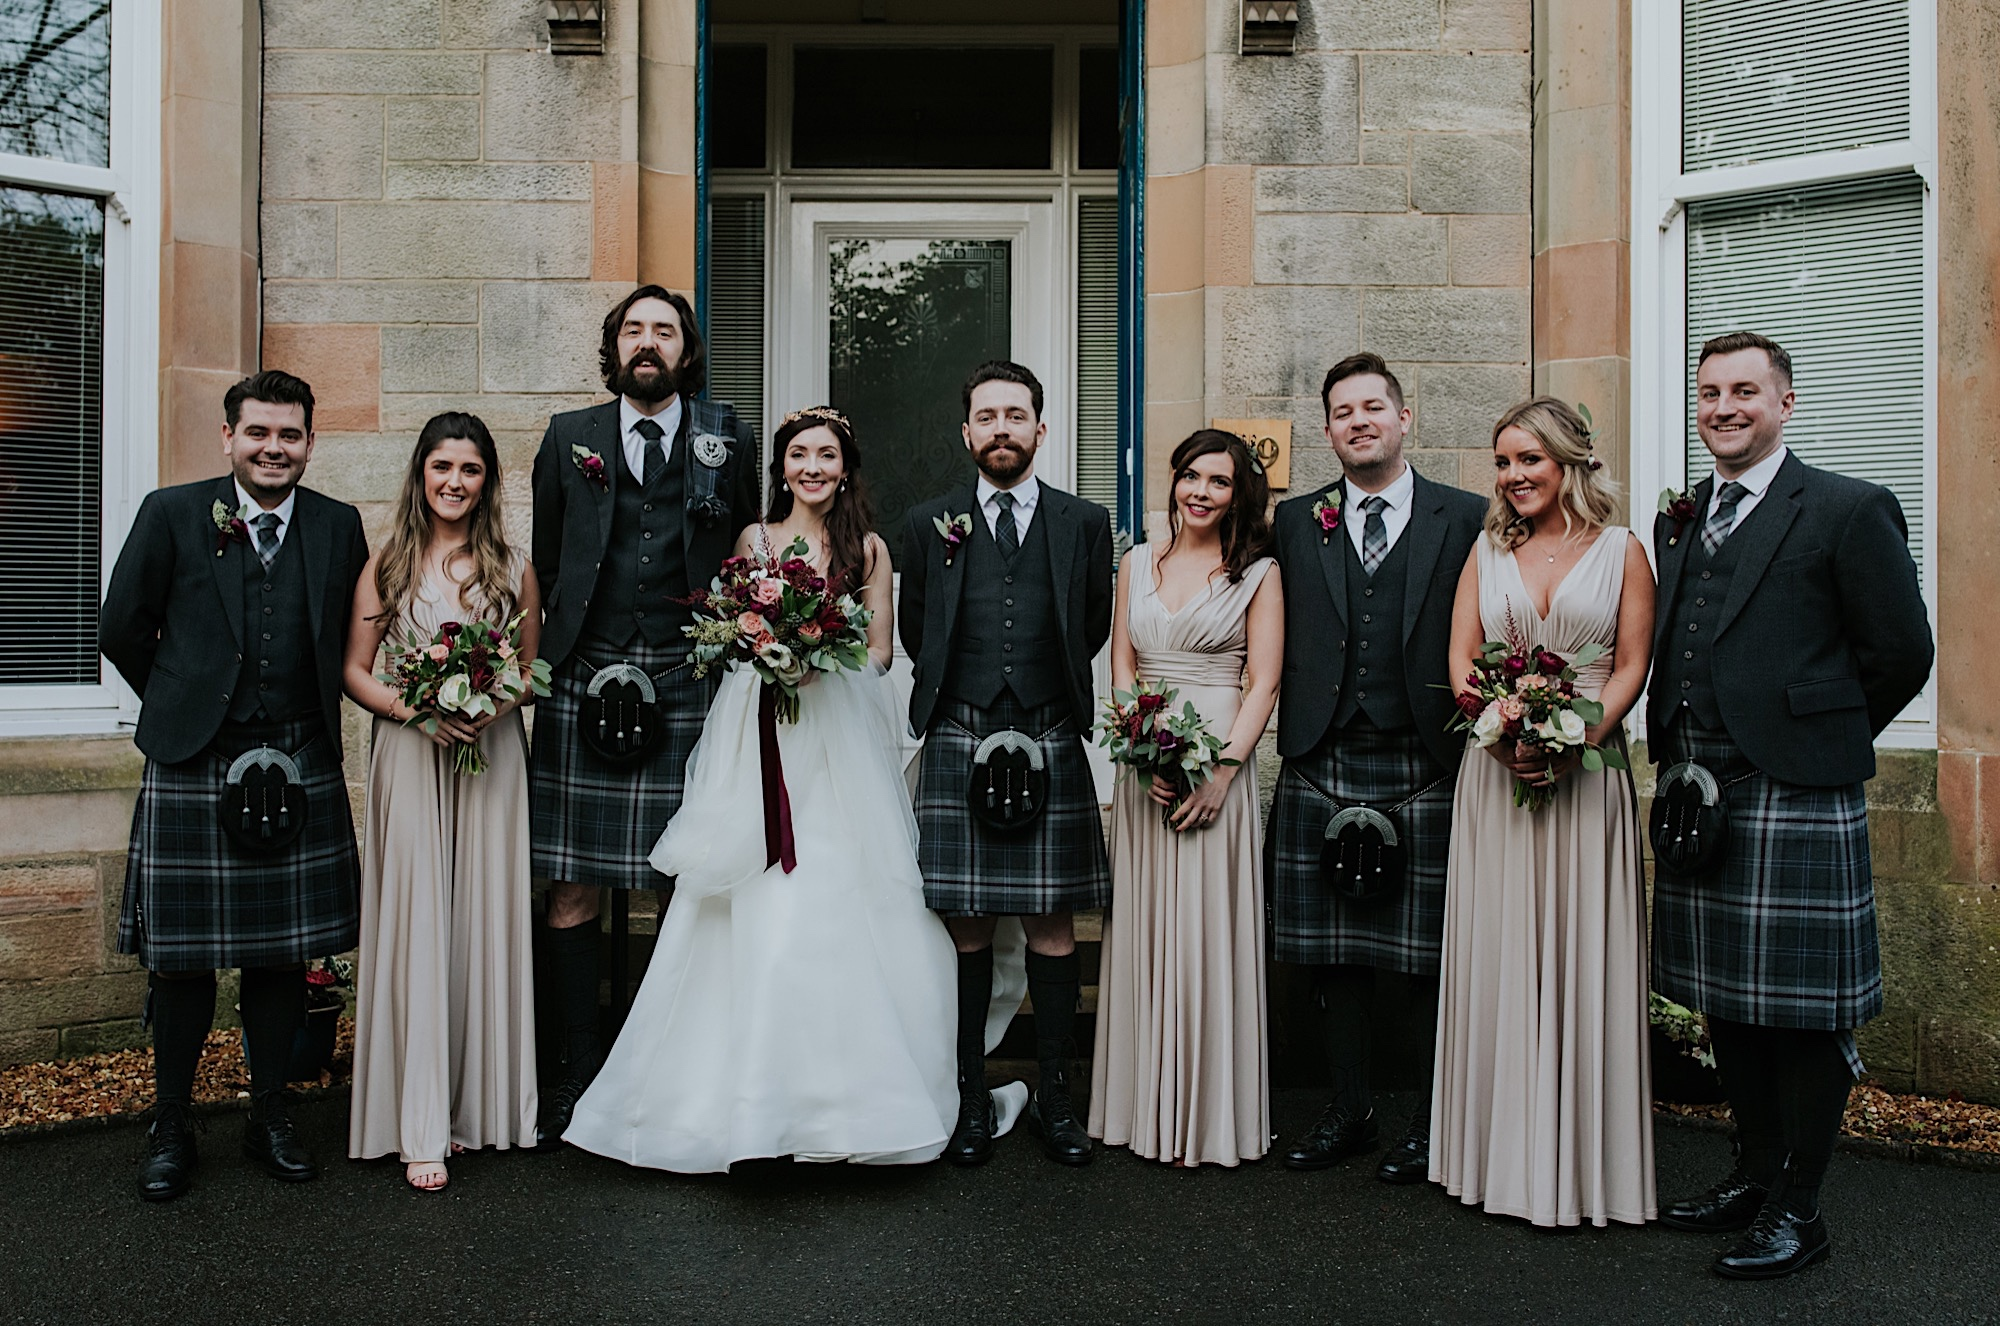 wedding group shot with bridesmaids and groomsmen